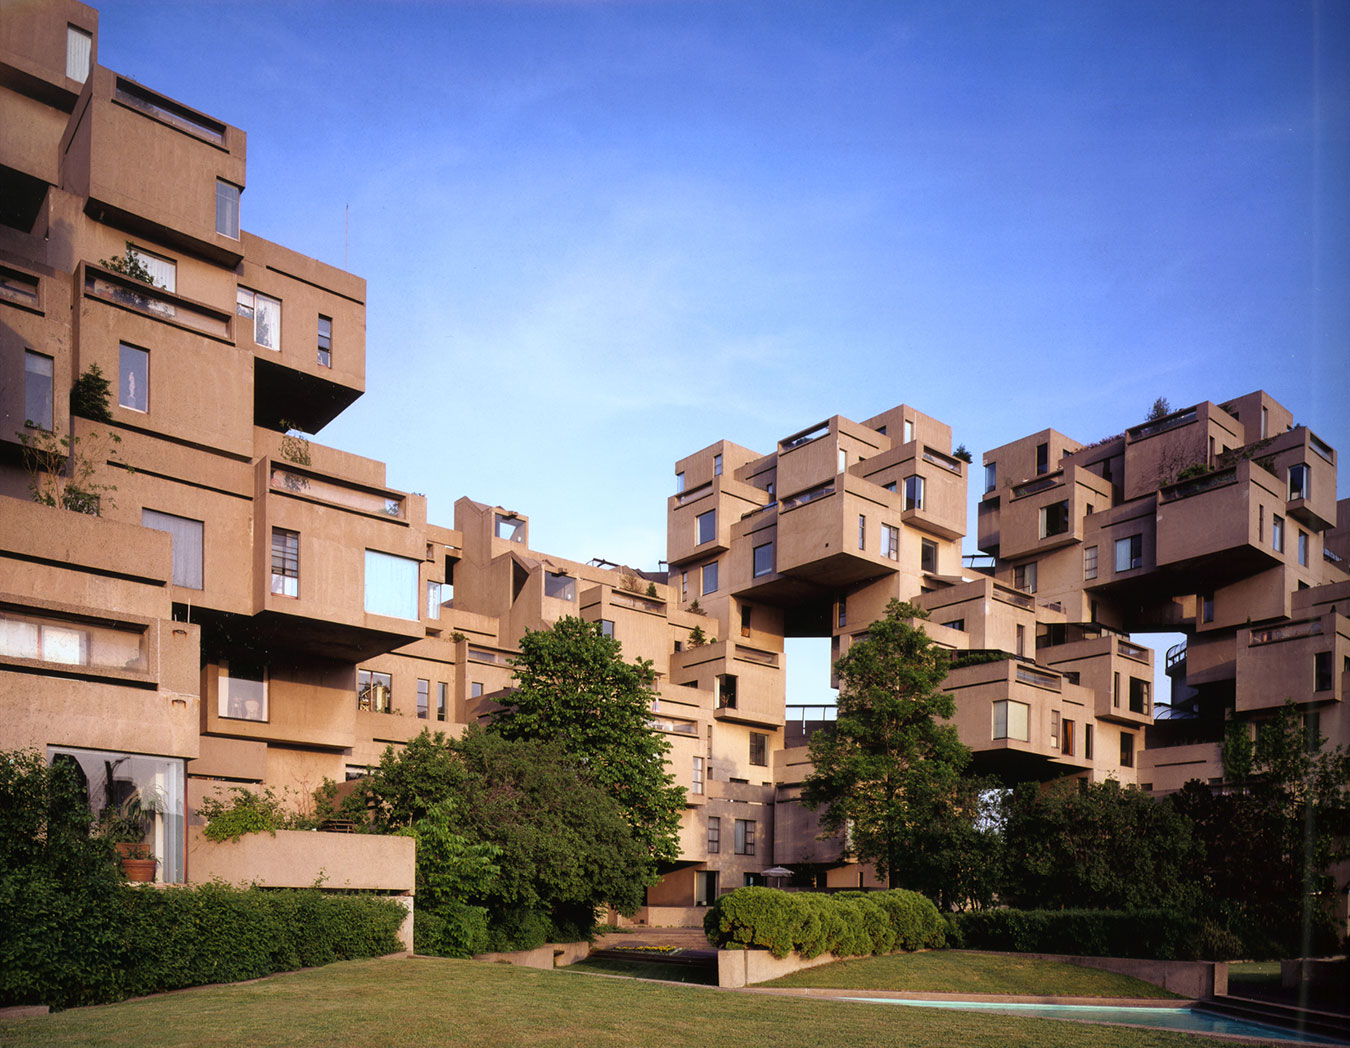 NUVO Blog: The Projects of Moshe Safdie